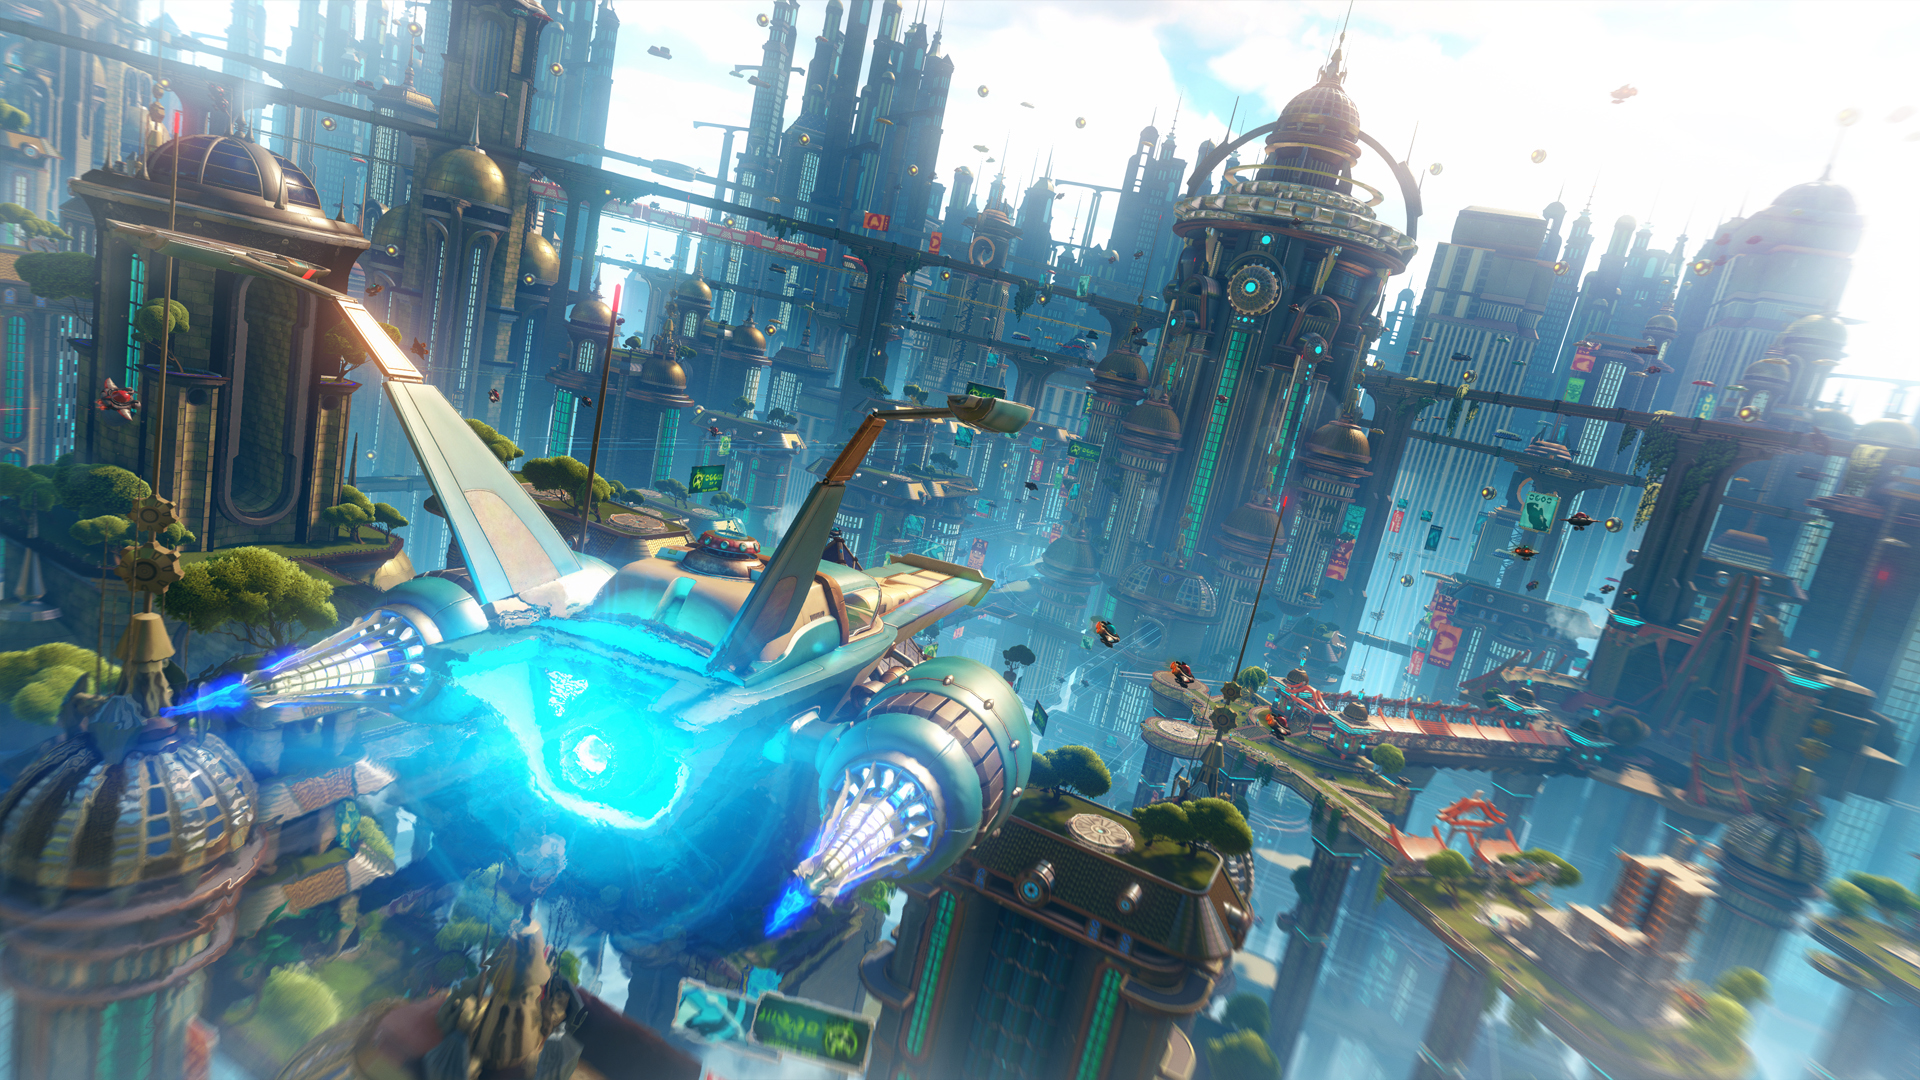 Ratchet & Clank Is A Love Letter To A Treasured Franchise 5 metro ship